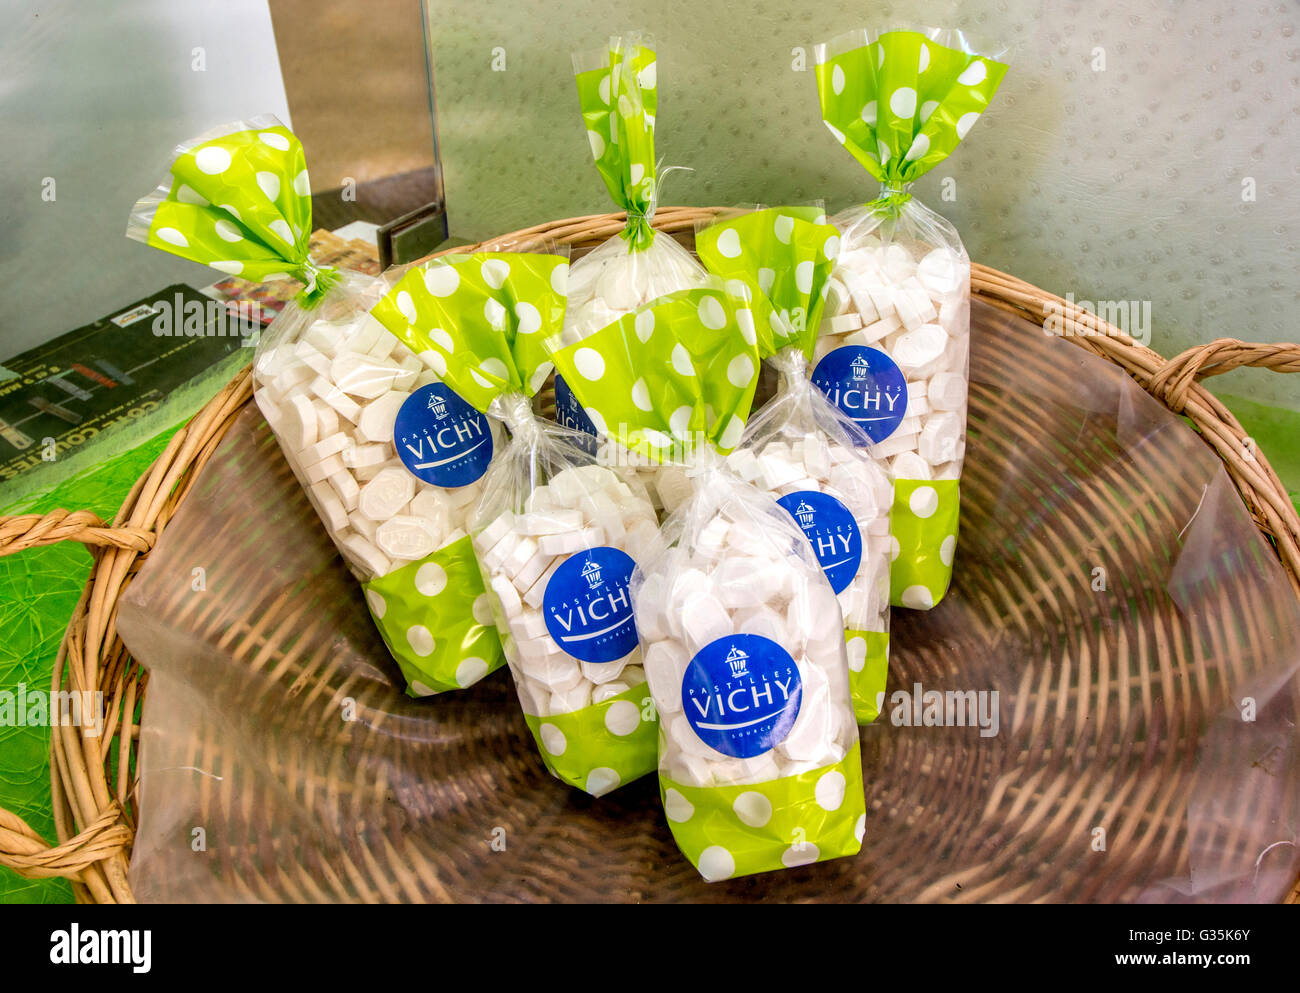 Vichy lozenges 'pastilles', Allier, France, Europe - Stock Image